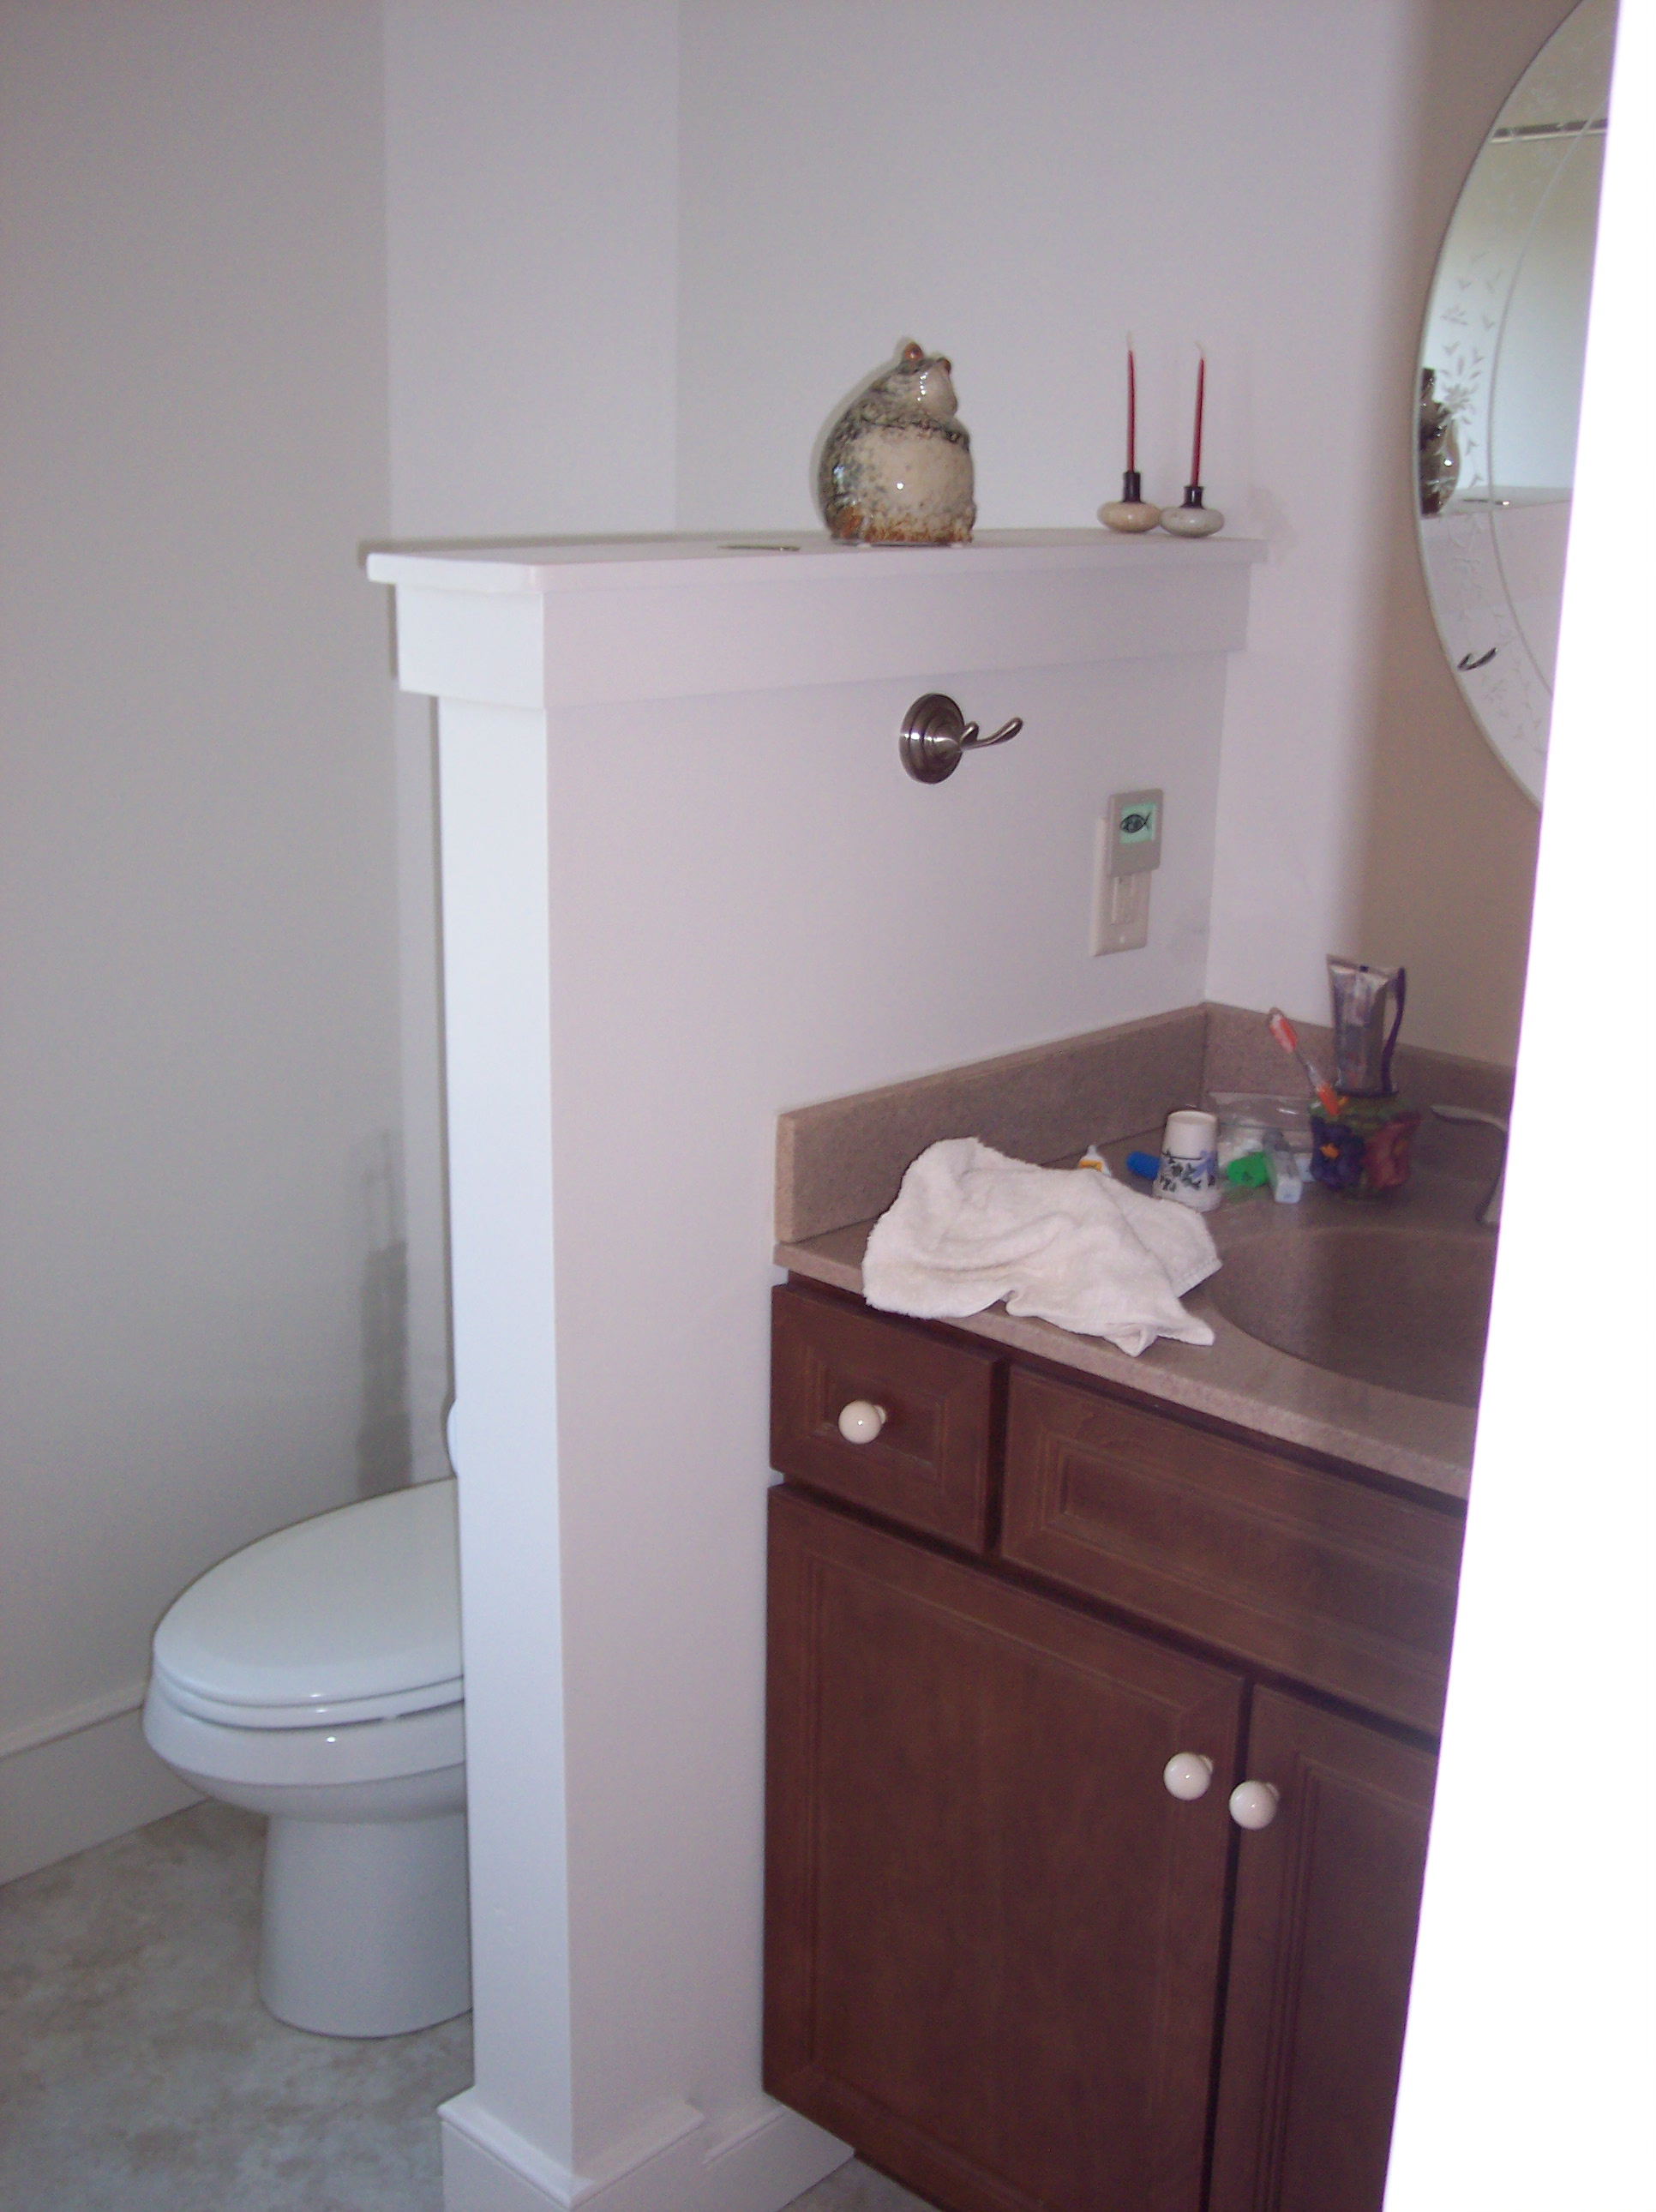 Remodeling ideas for small bathrooms lancaster pa for Small bathroom remodel designs